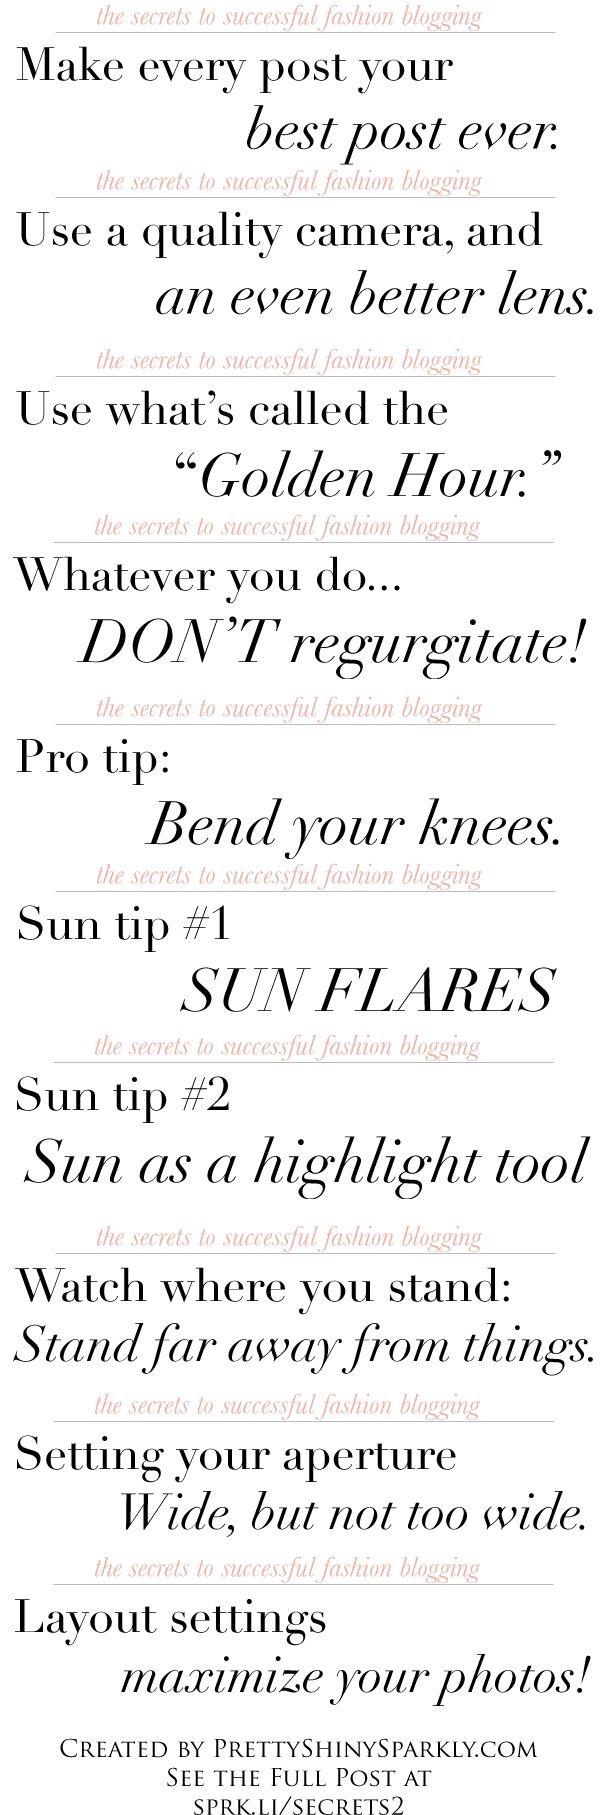 Photography Tips for Fashion Bloggers (and though I'm not one, I got a lot out of this post! Links to an article explaining each tip)